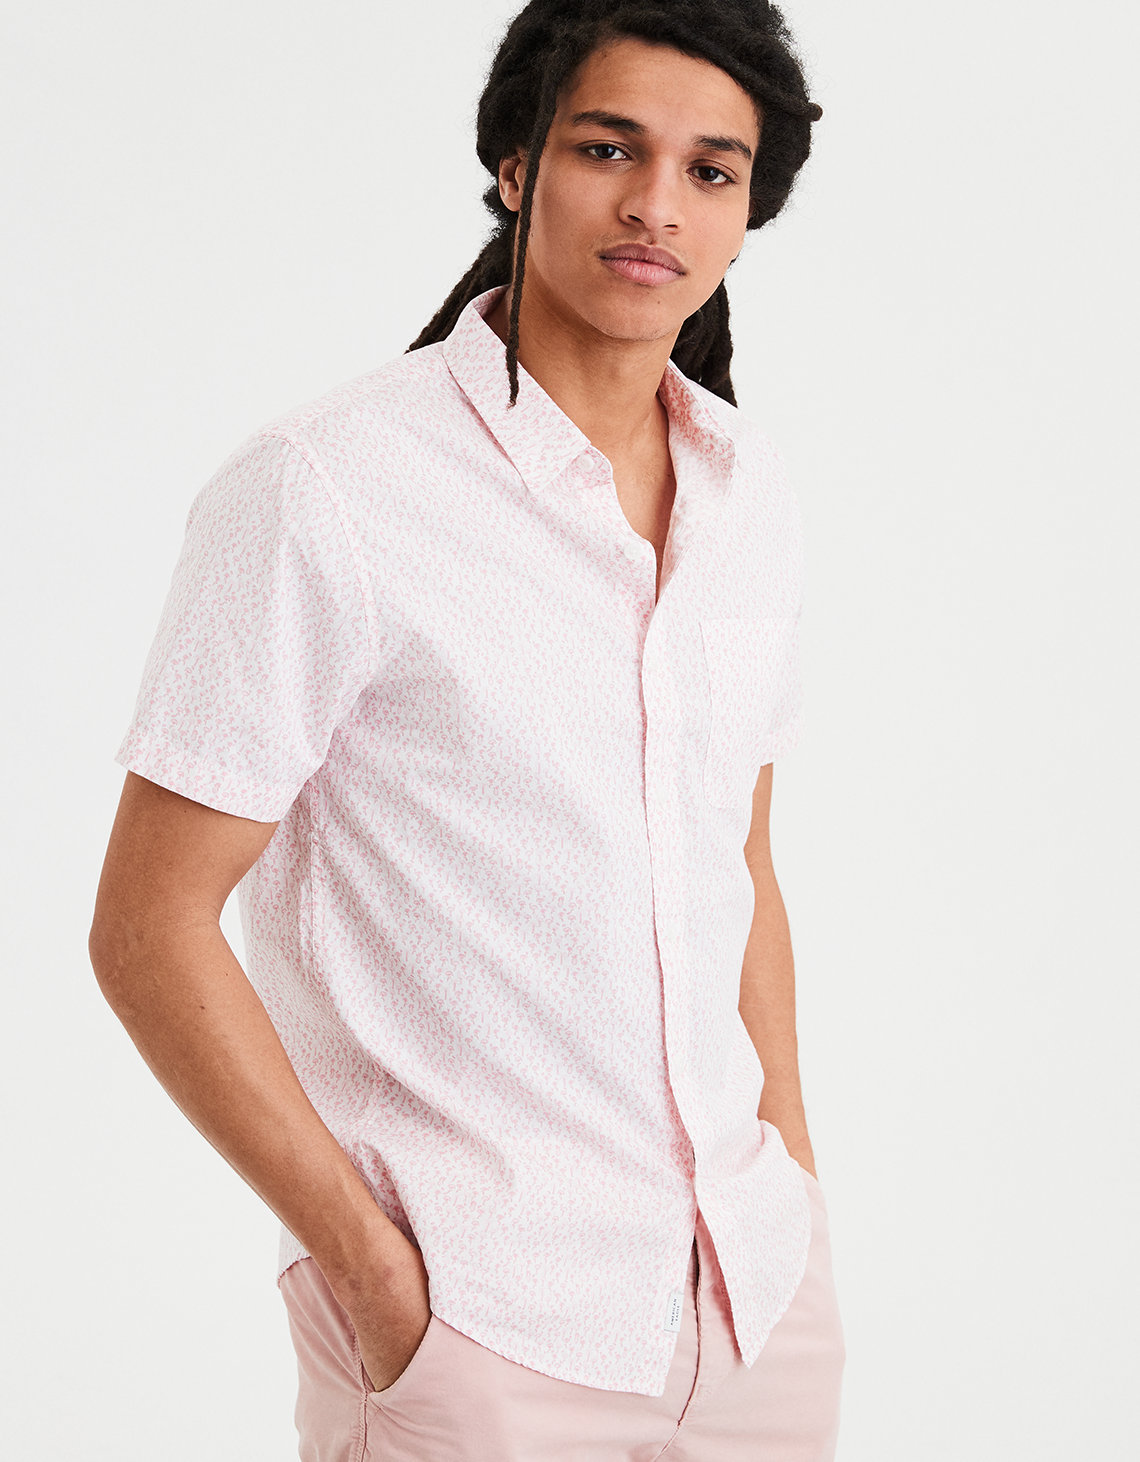 3de2119ad7a4 AE Short Sleeve Poplin Button Down Shirt. Placeholder image. Product Image